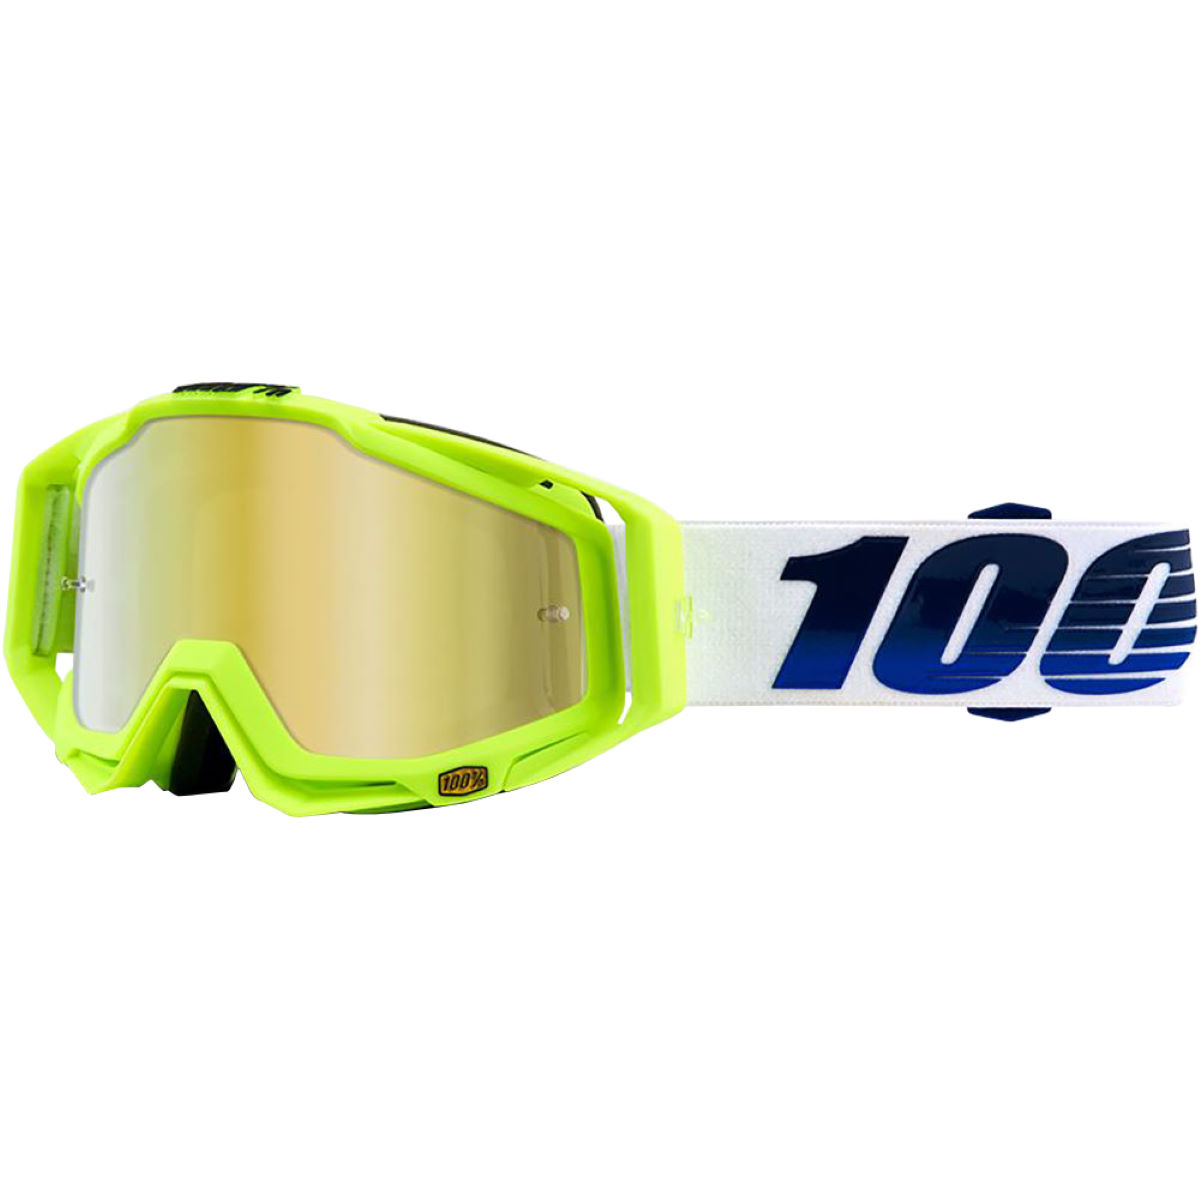 100% RACECRAFT GP21 - Mirror Gold Lens   Cycling Goggles